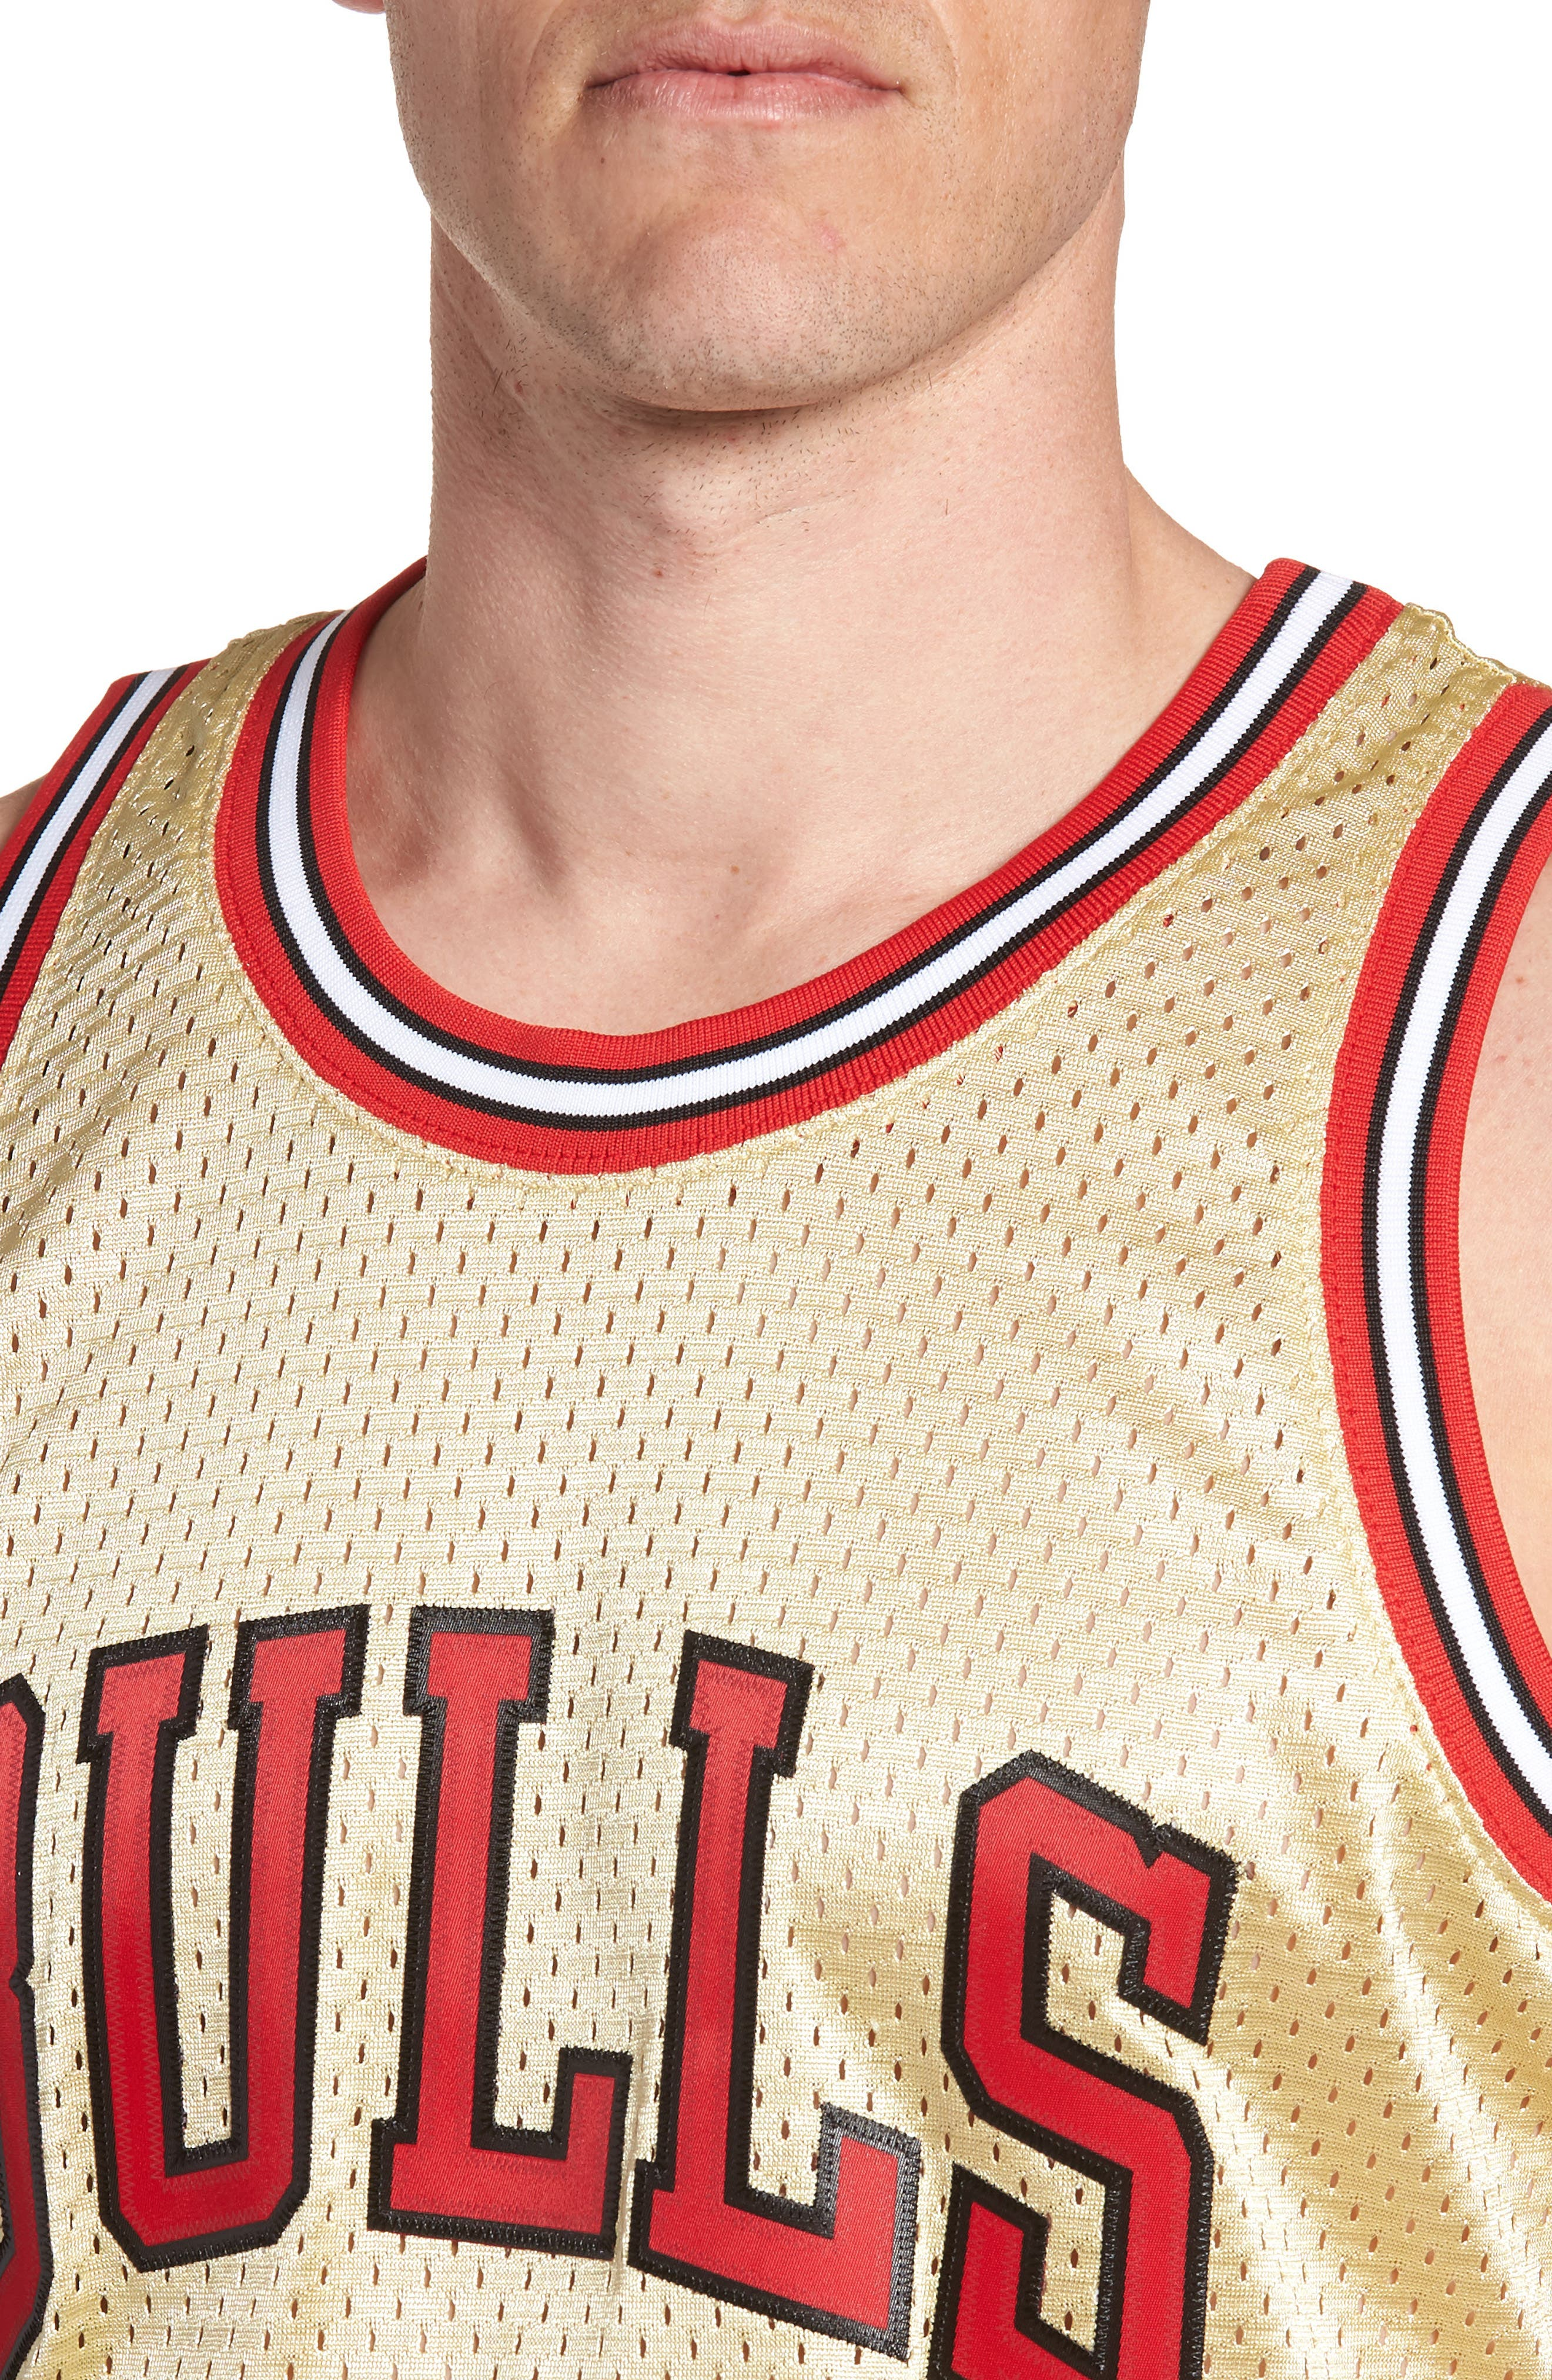 NBA Gold Pippen Jersey,                             Alternate thumbnail 4, color,                             700